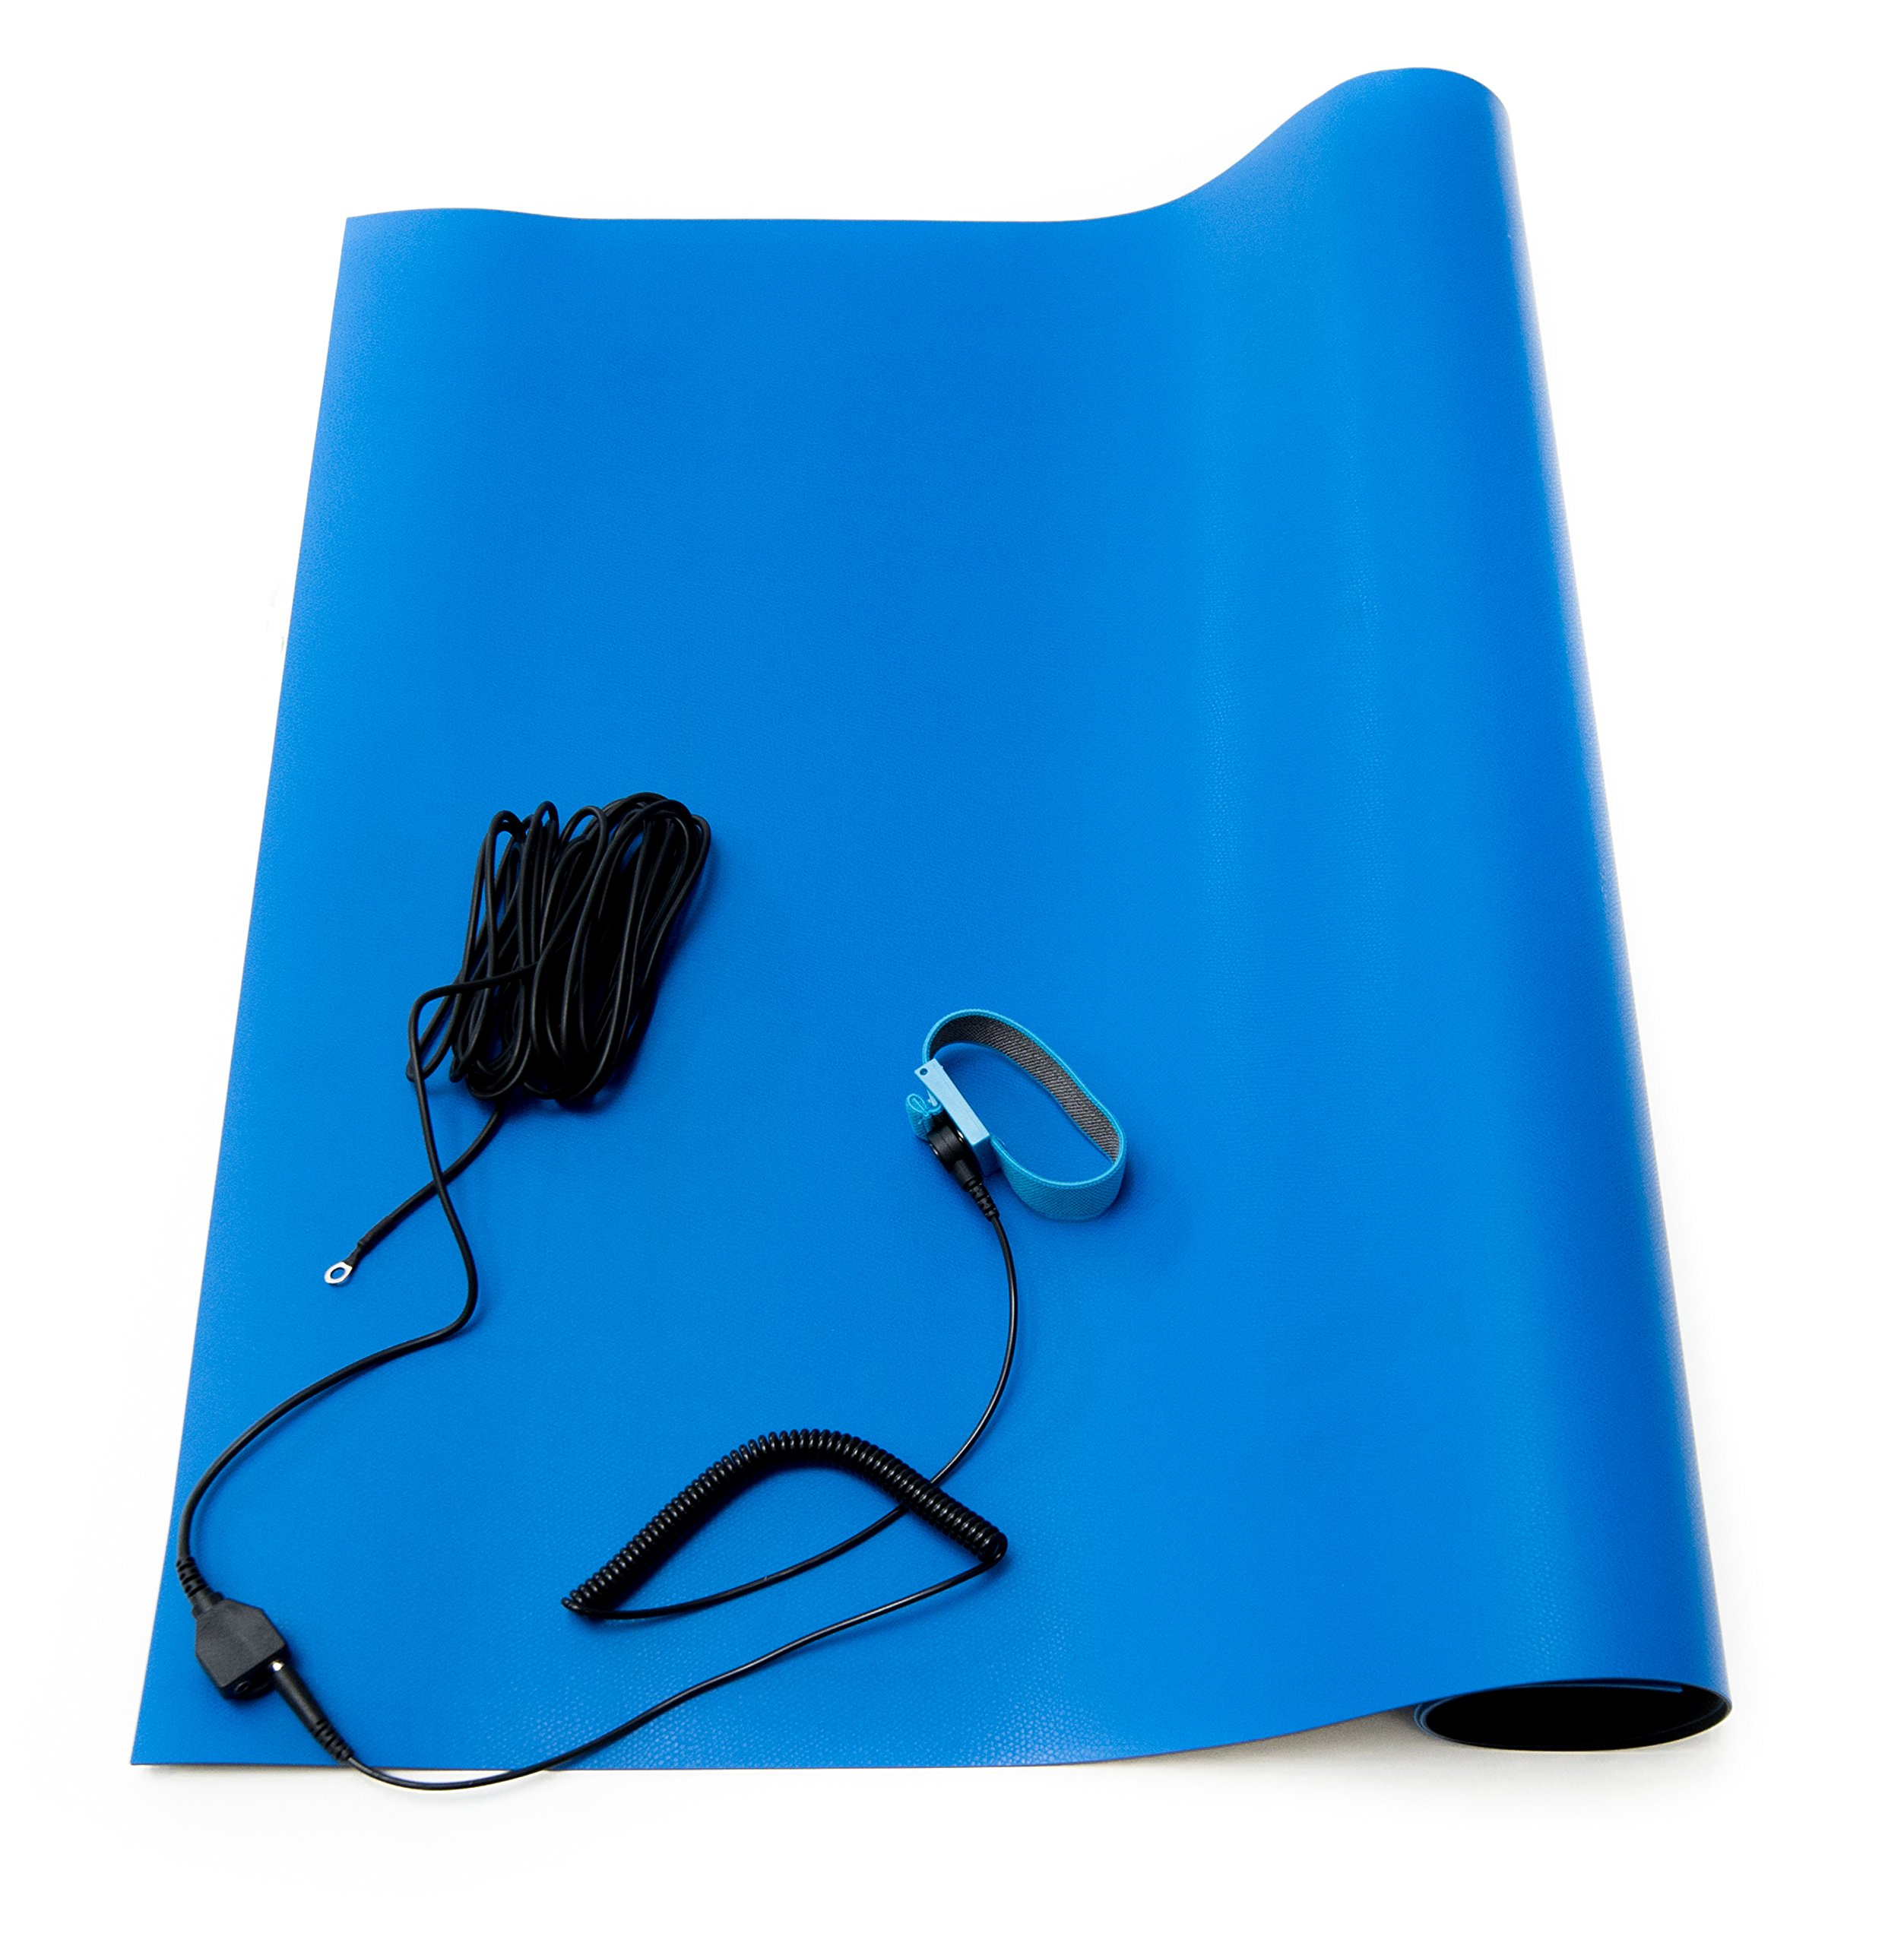 Bertech ESD High Temperature Rubber Mat Kit with a Wrist Strap and Grounding Cord, 20'' Wide x 24'' Long x 0.06'' Thick, Blue, Made in USA